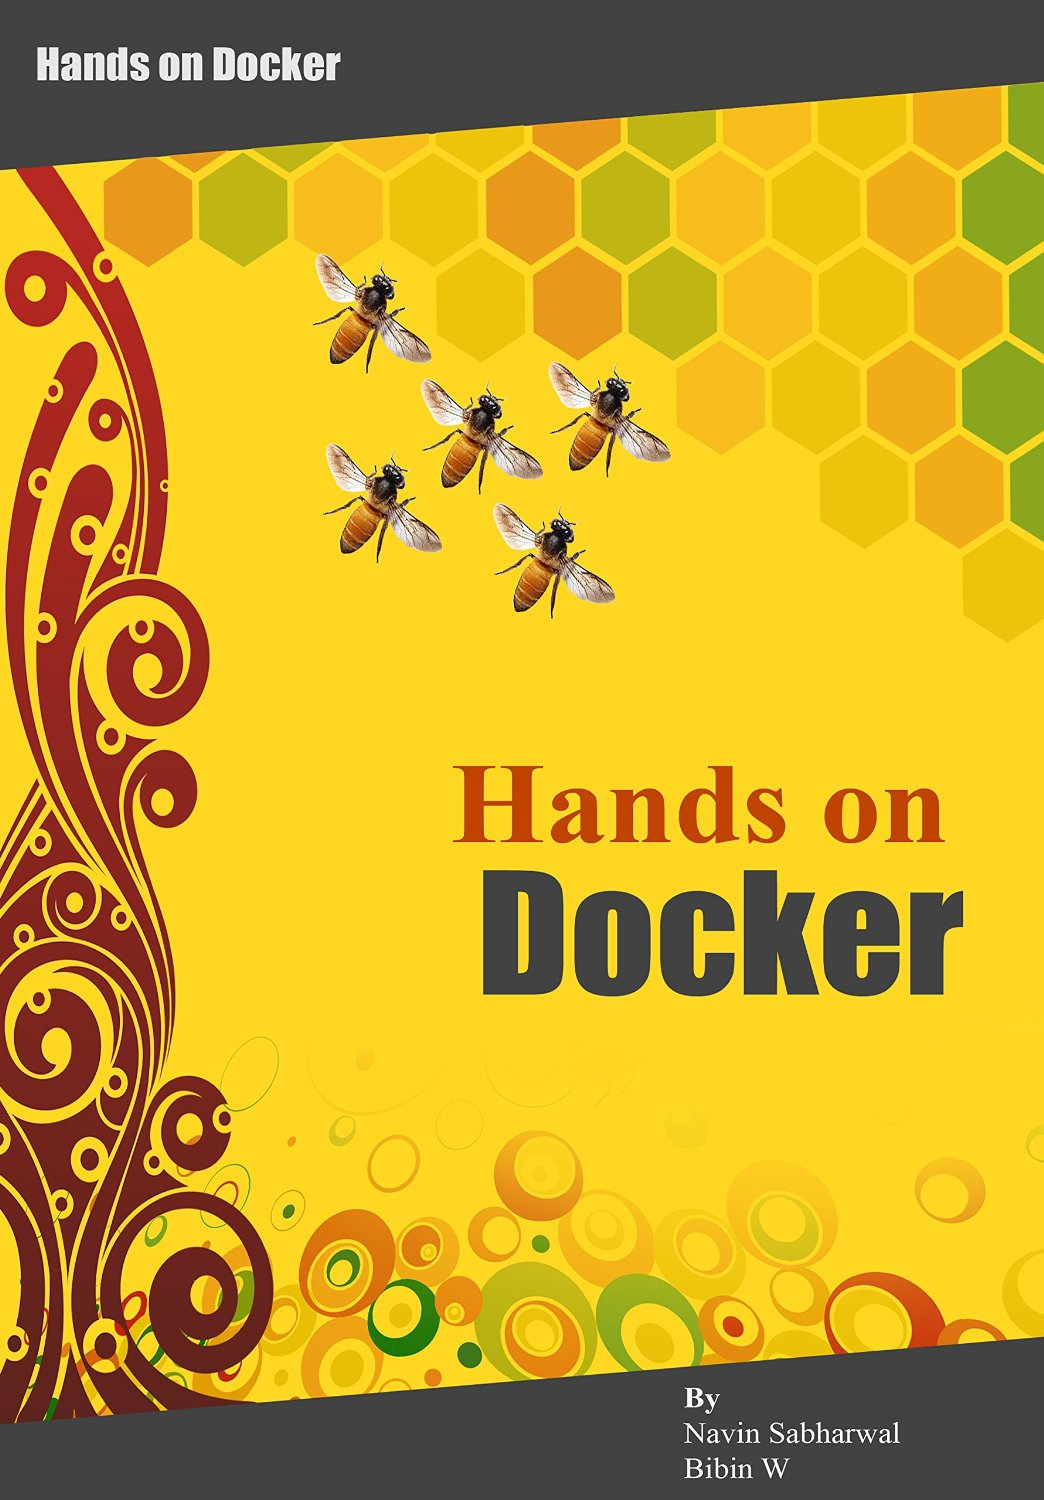 Docker Hands on: Deploy, Administer Docker Platform free download